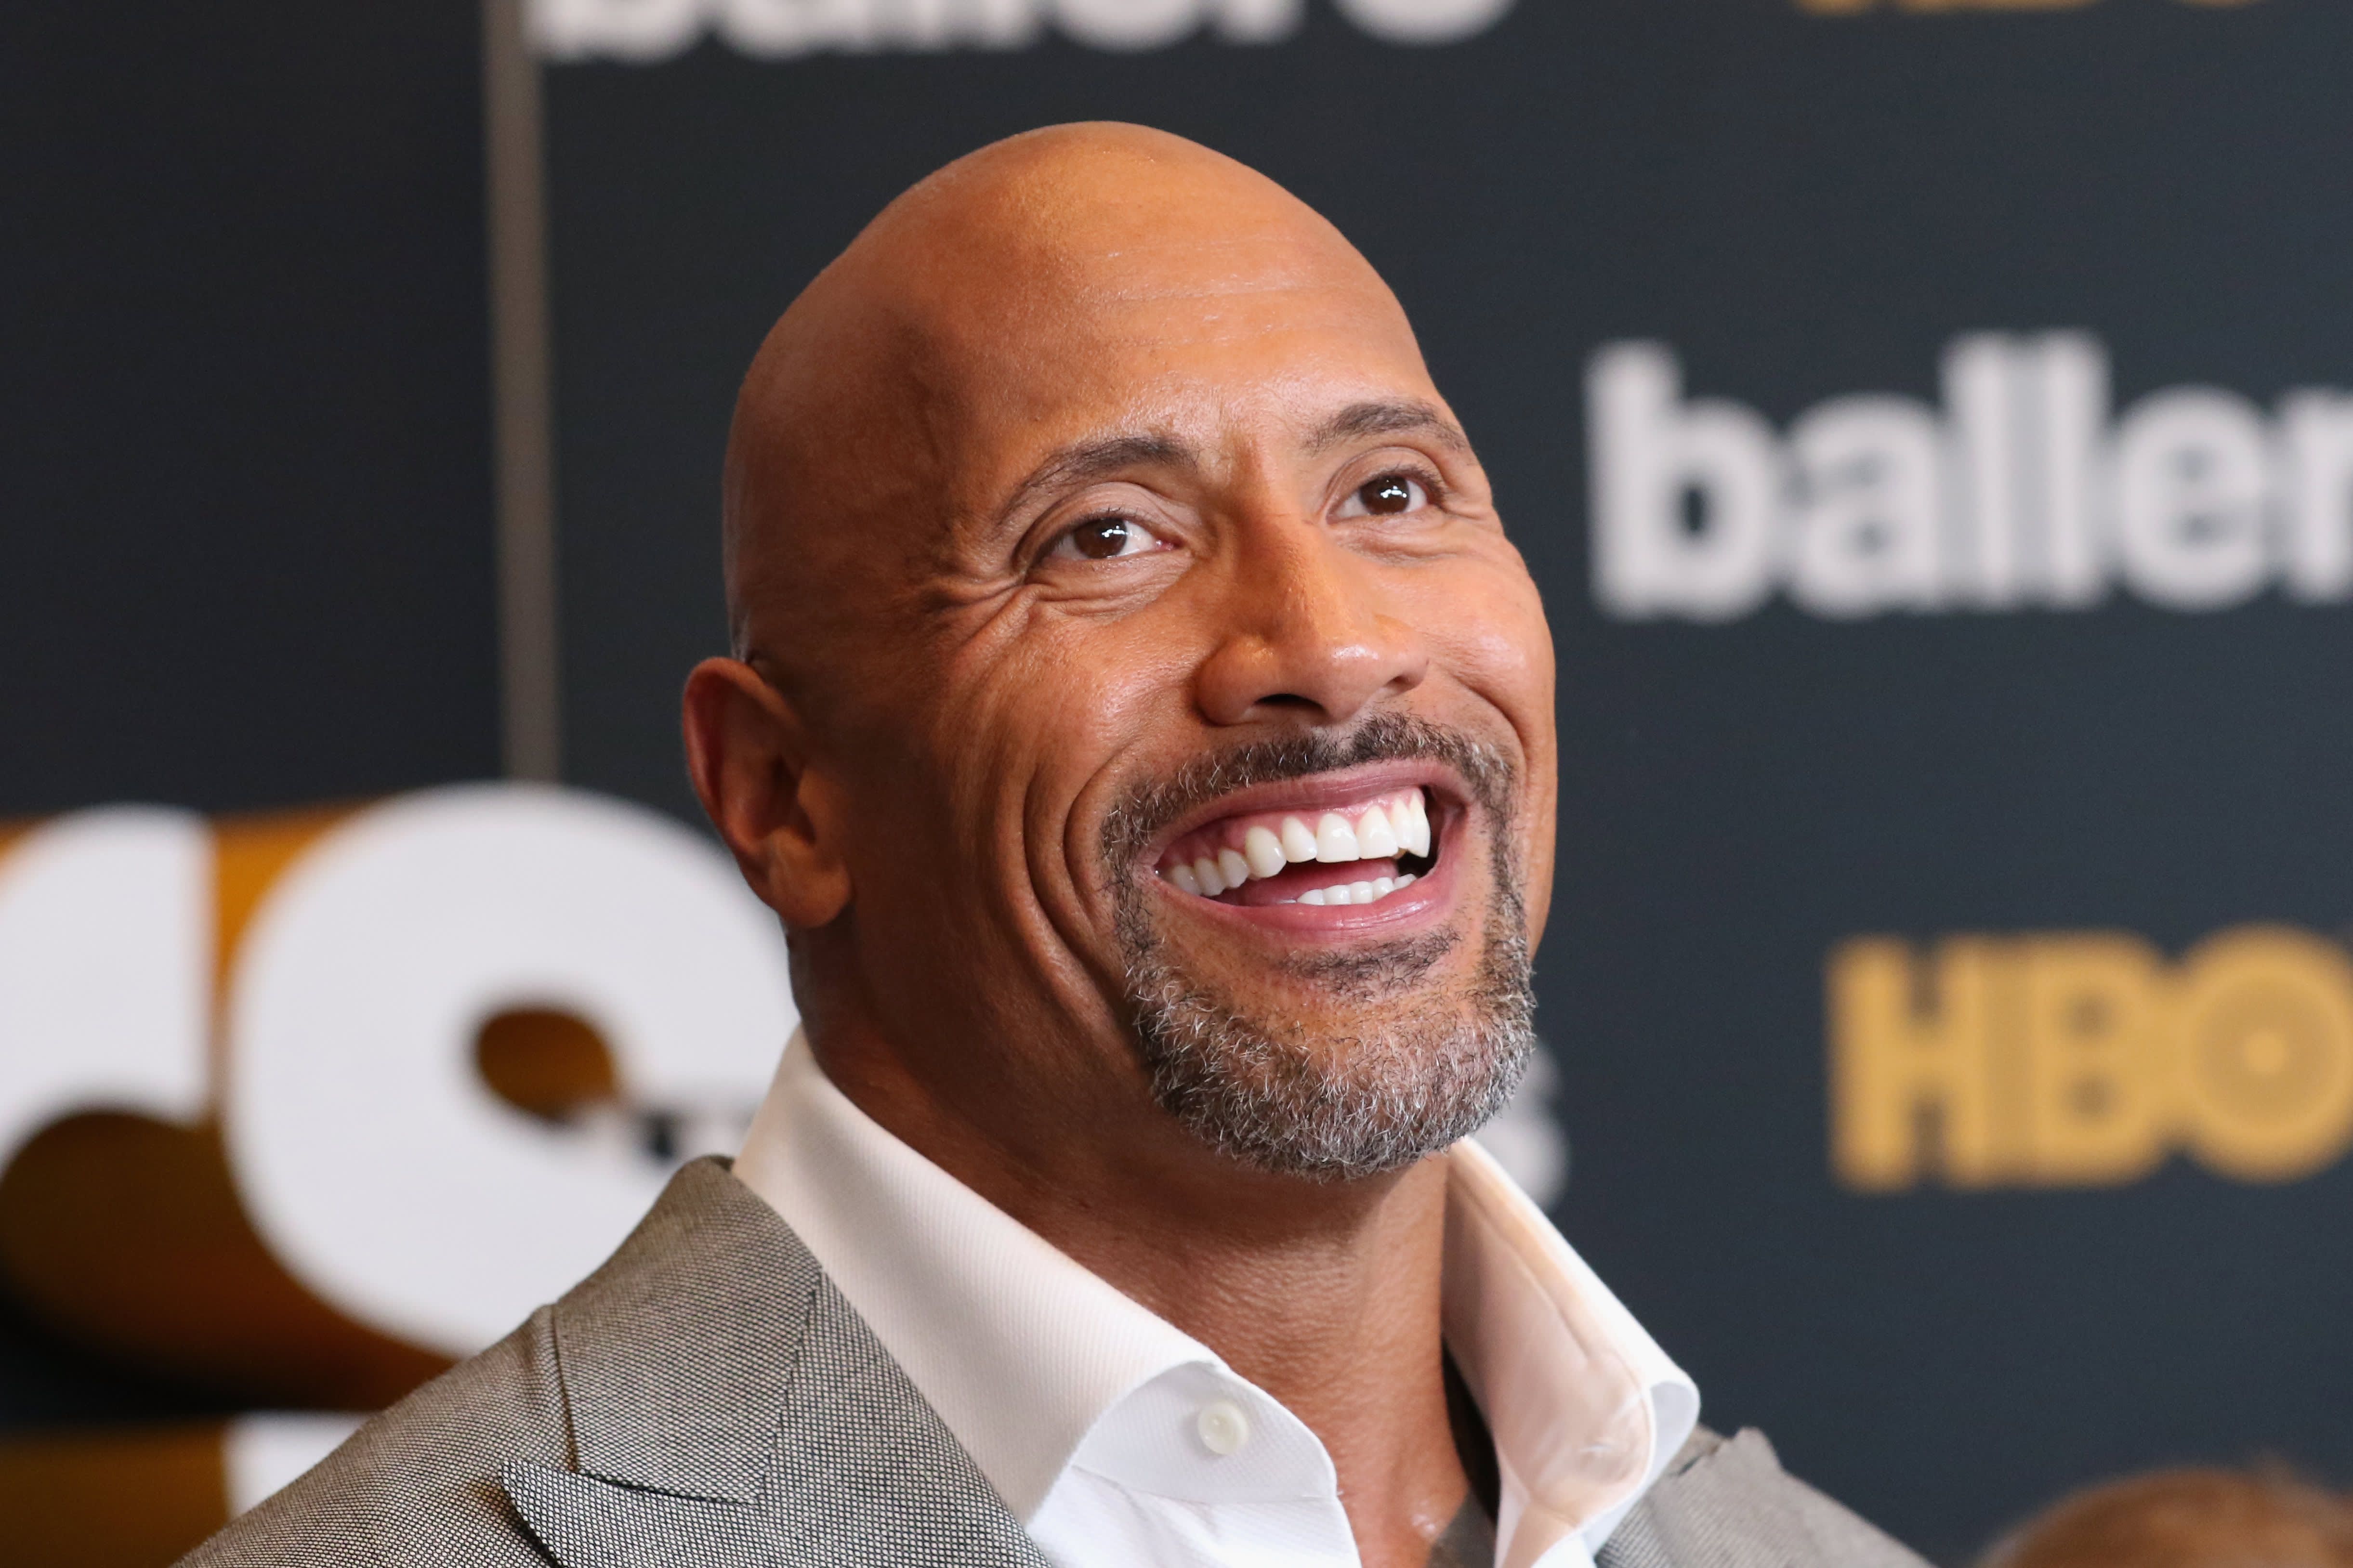 How Much Dwayne The Rock Johnson Earns Per Episode Of Ballers